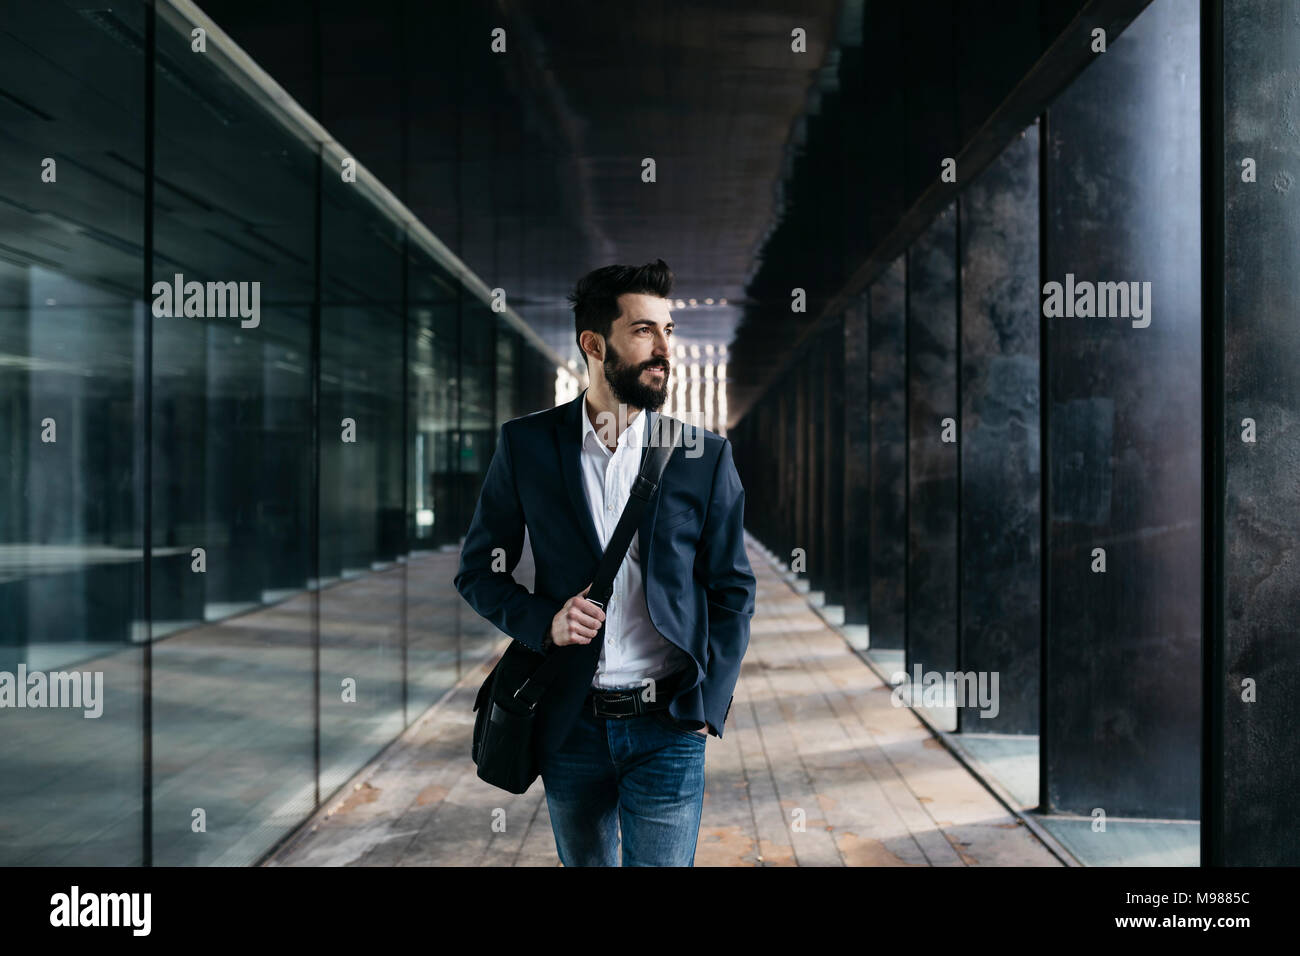 Businessman walking along arcade - Stock Image